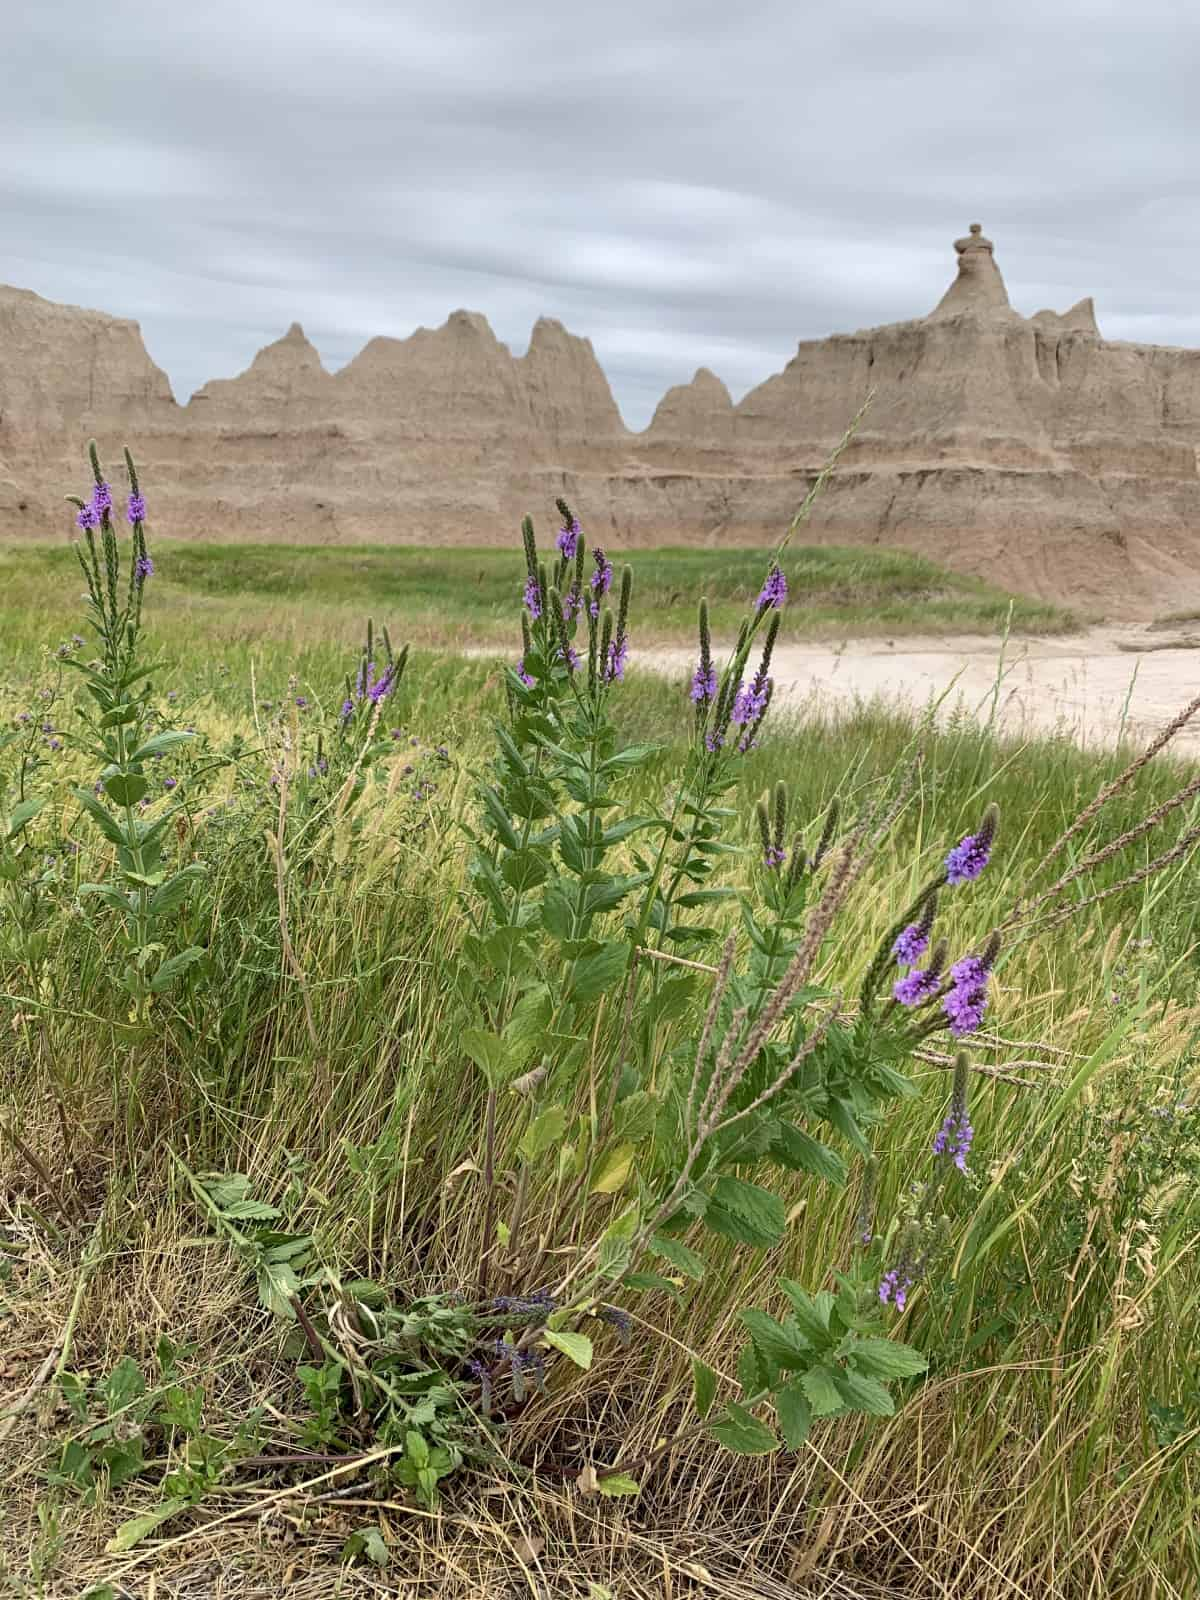 Planning a Trip to Badlands National Park | From fossils to wildlife to prairie wildflowers to amazing rock formations, a roadtrip to South Dakota's Badlands is a must, and an easy day trip from Rapid City. What route to take, costs, things to do in Badlands, where to stop, and many more tips (including a stop at Wall Drug!). South Dakota roadtrip ideas, visiting national parks, social distance roadtrip ideas.